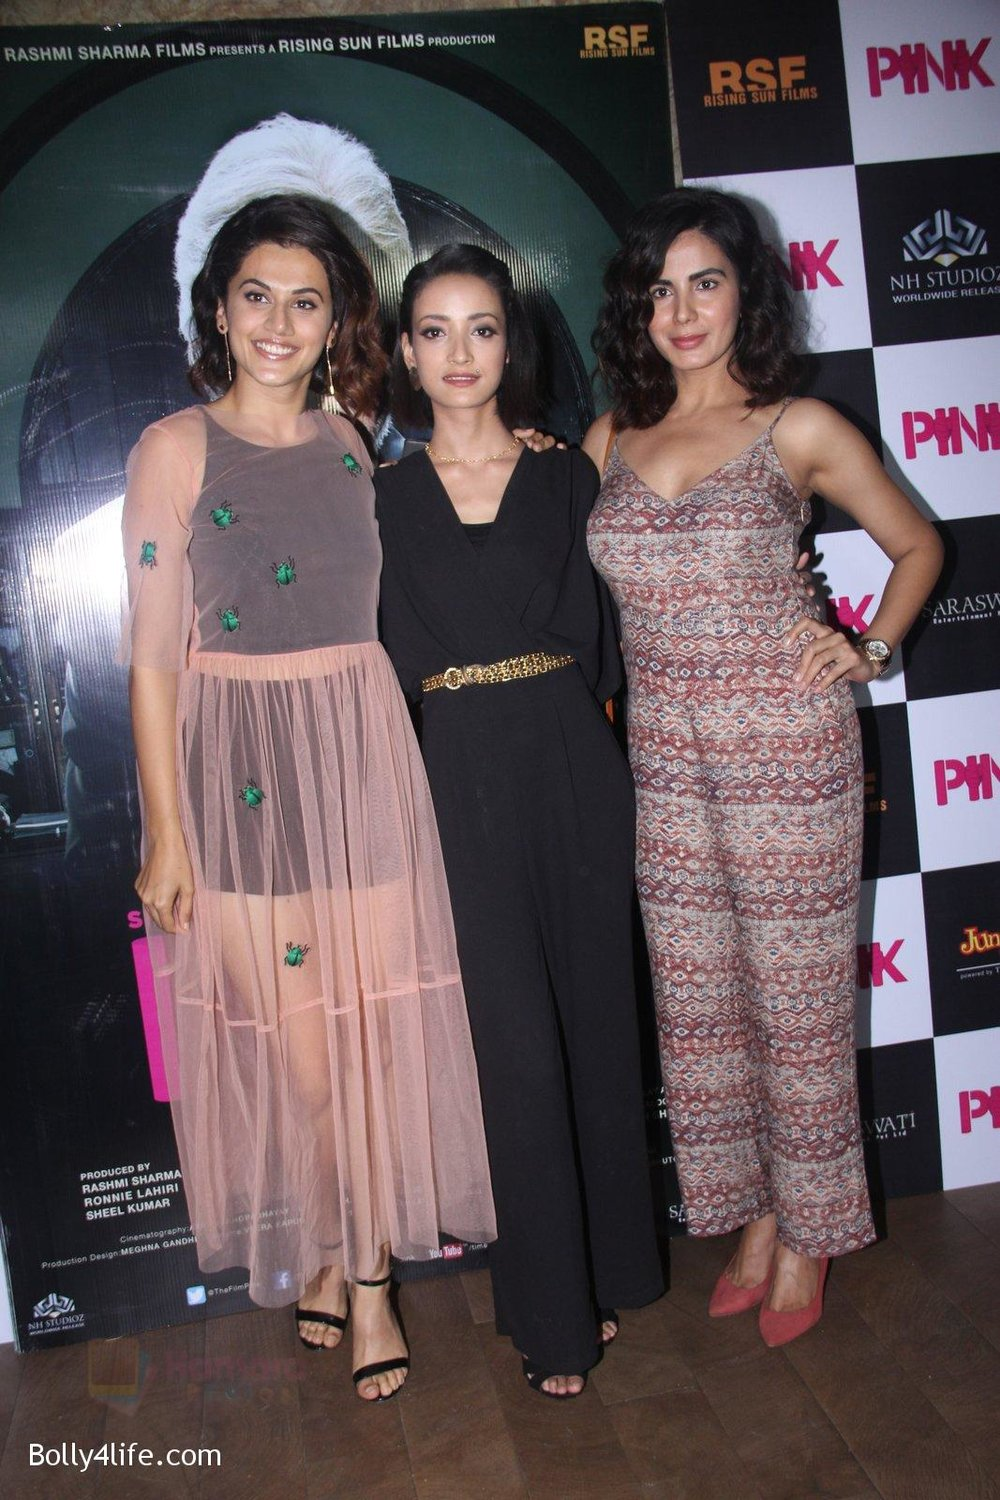 Kirti-Kulhari-Taapsee-Pannu-Andrea-Tariang-at-Pink-Screening-in-Lightbox-on-12th-Sept-2016-.jpg